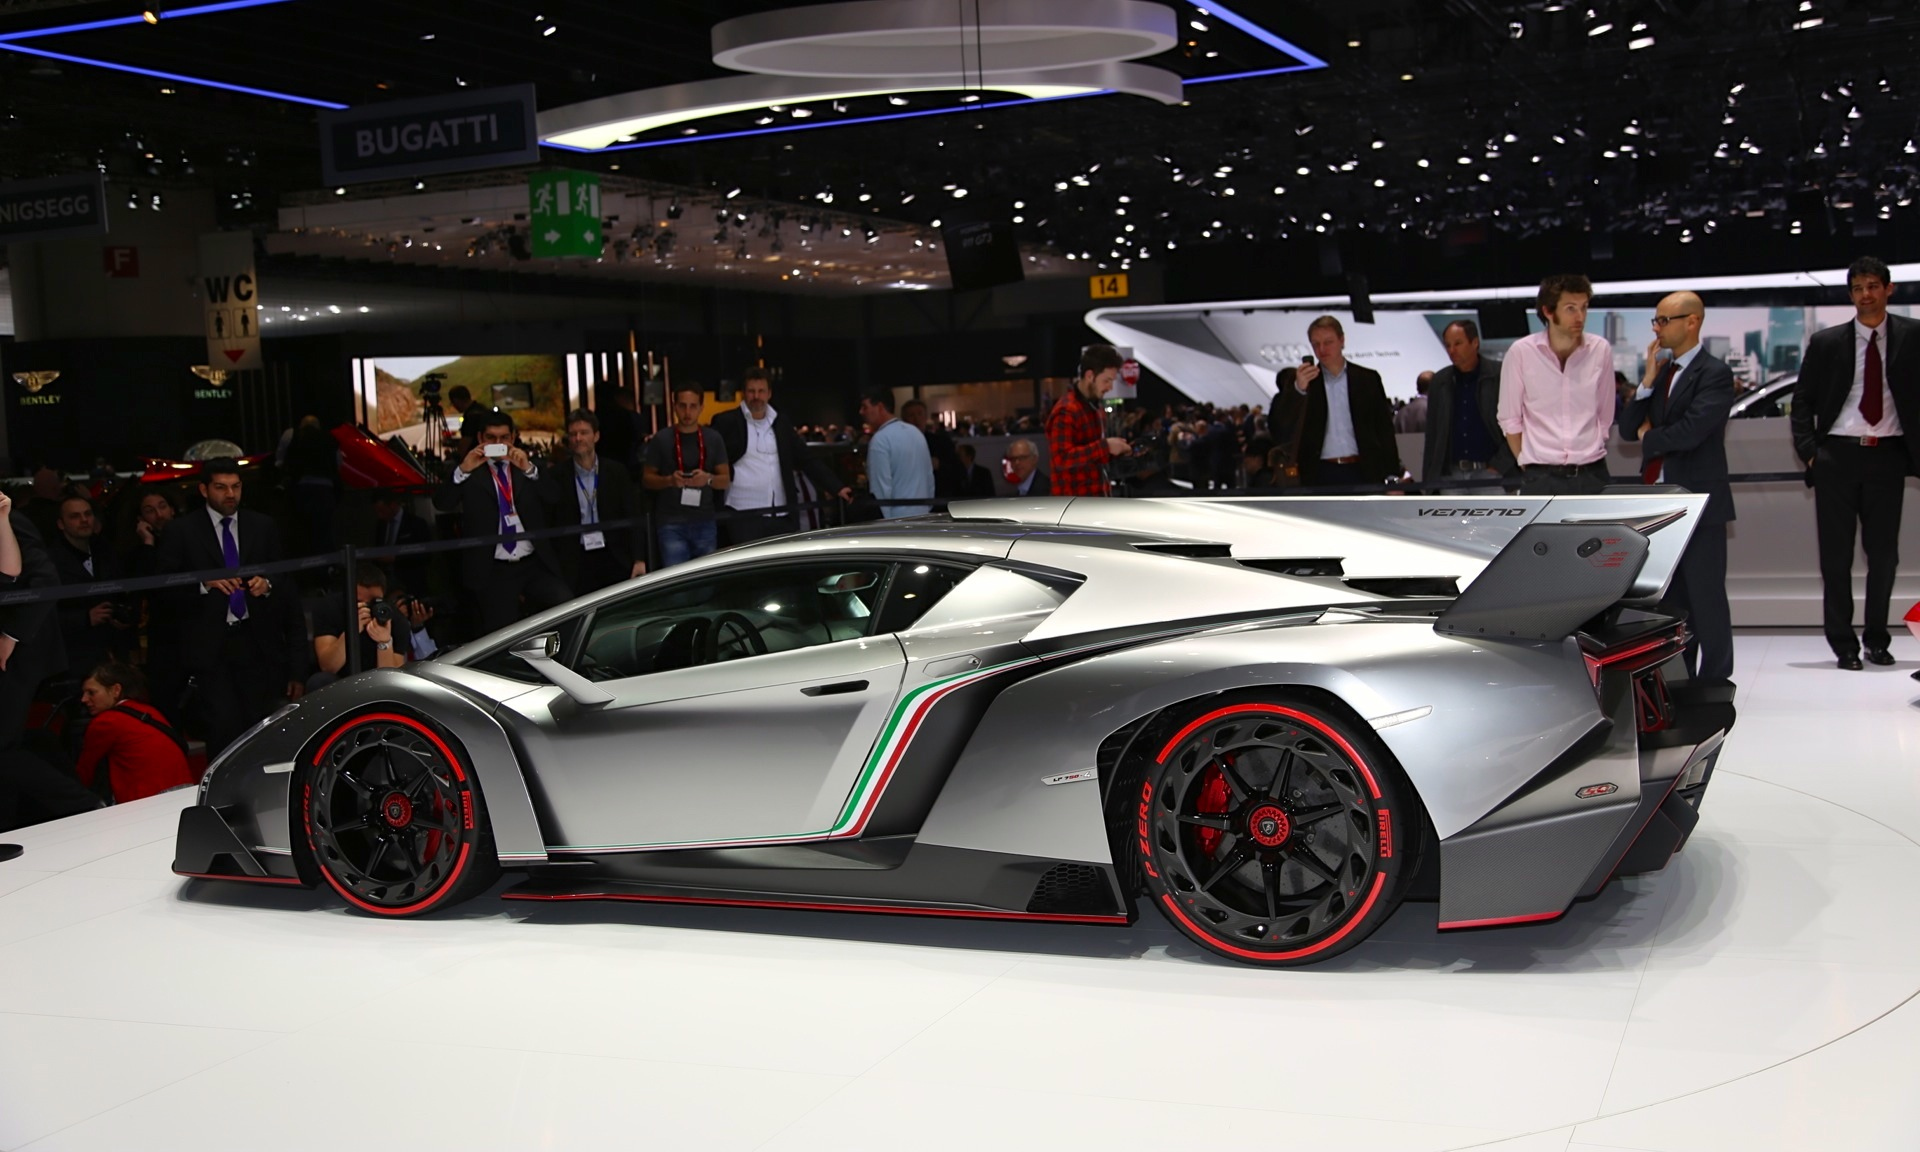 Lamborghini Veneno The Hypercar That Surprised Even Its Ceo